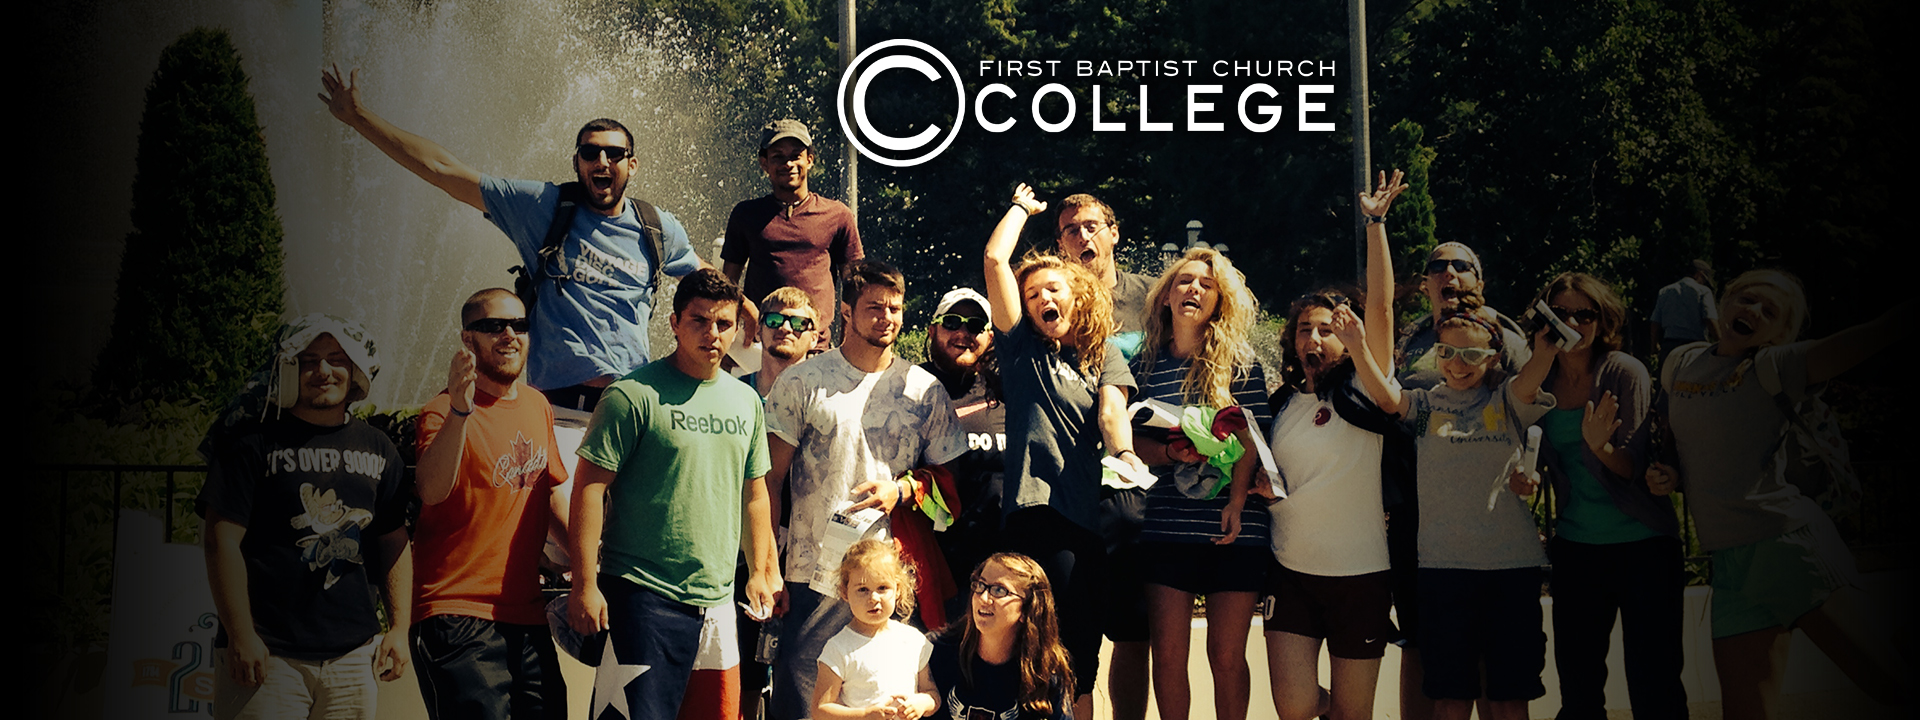 FBC College Ministry